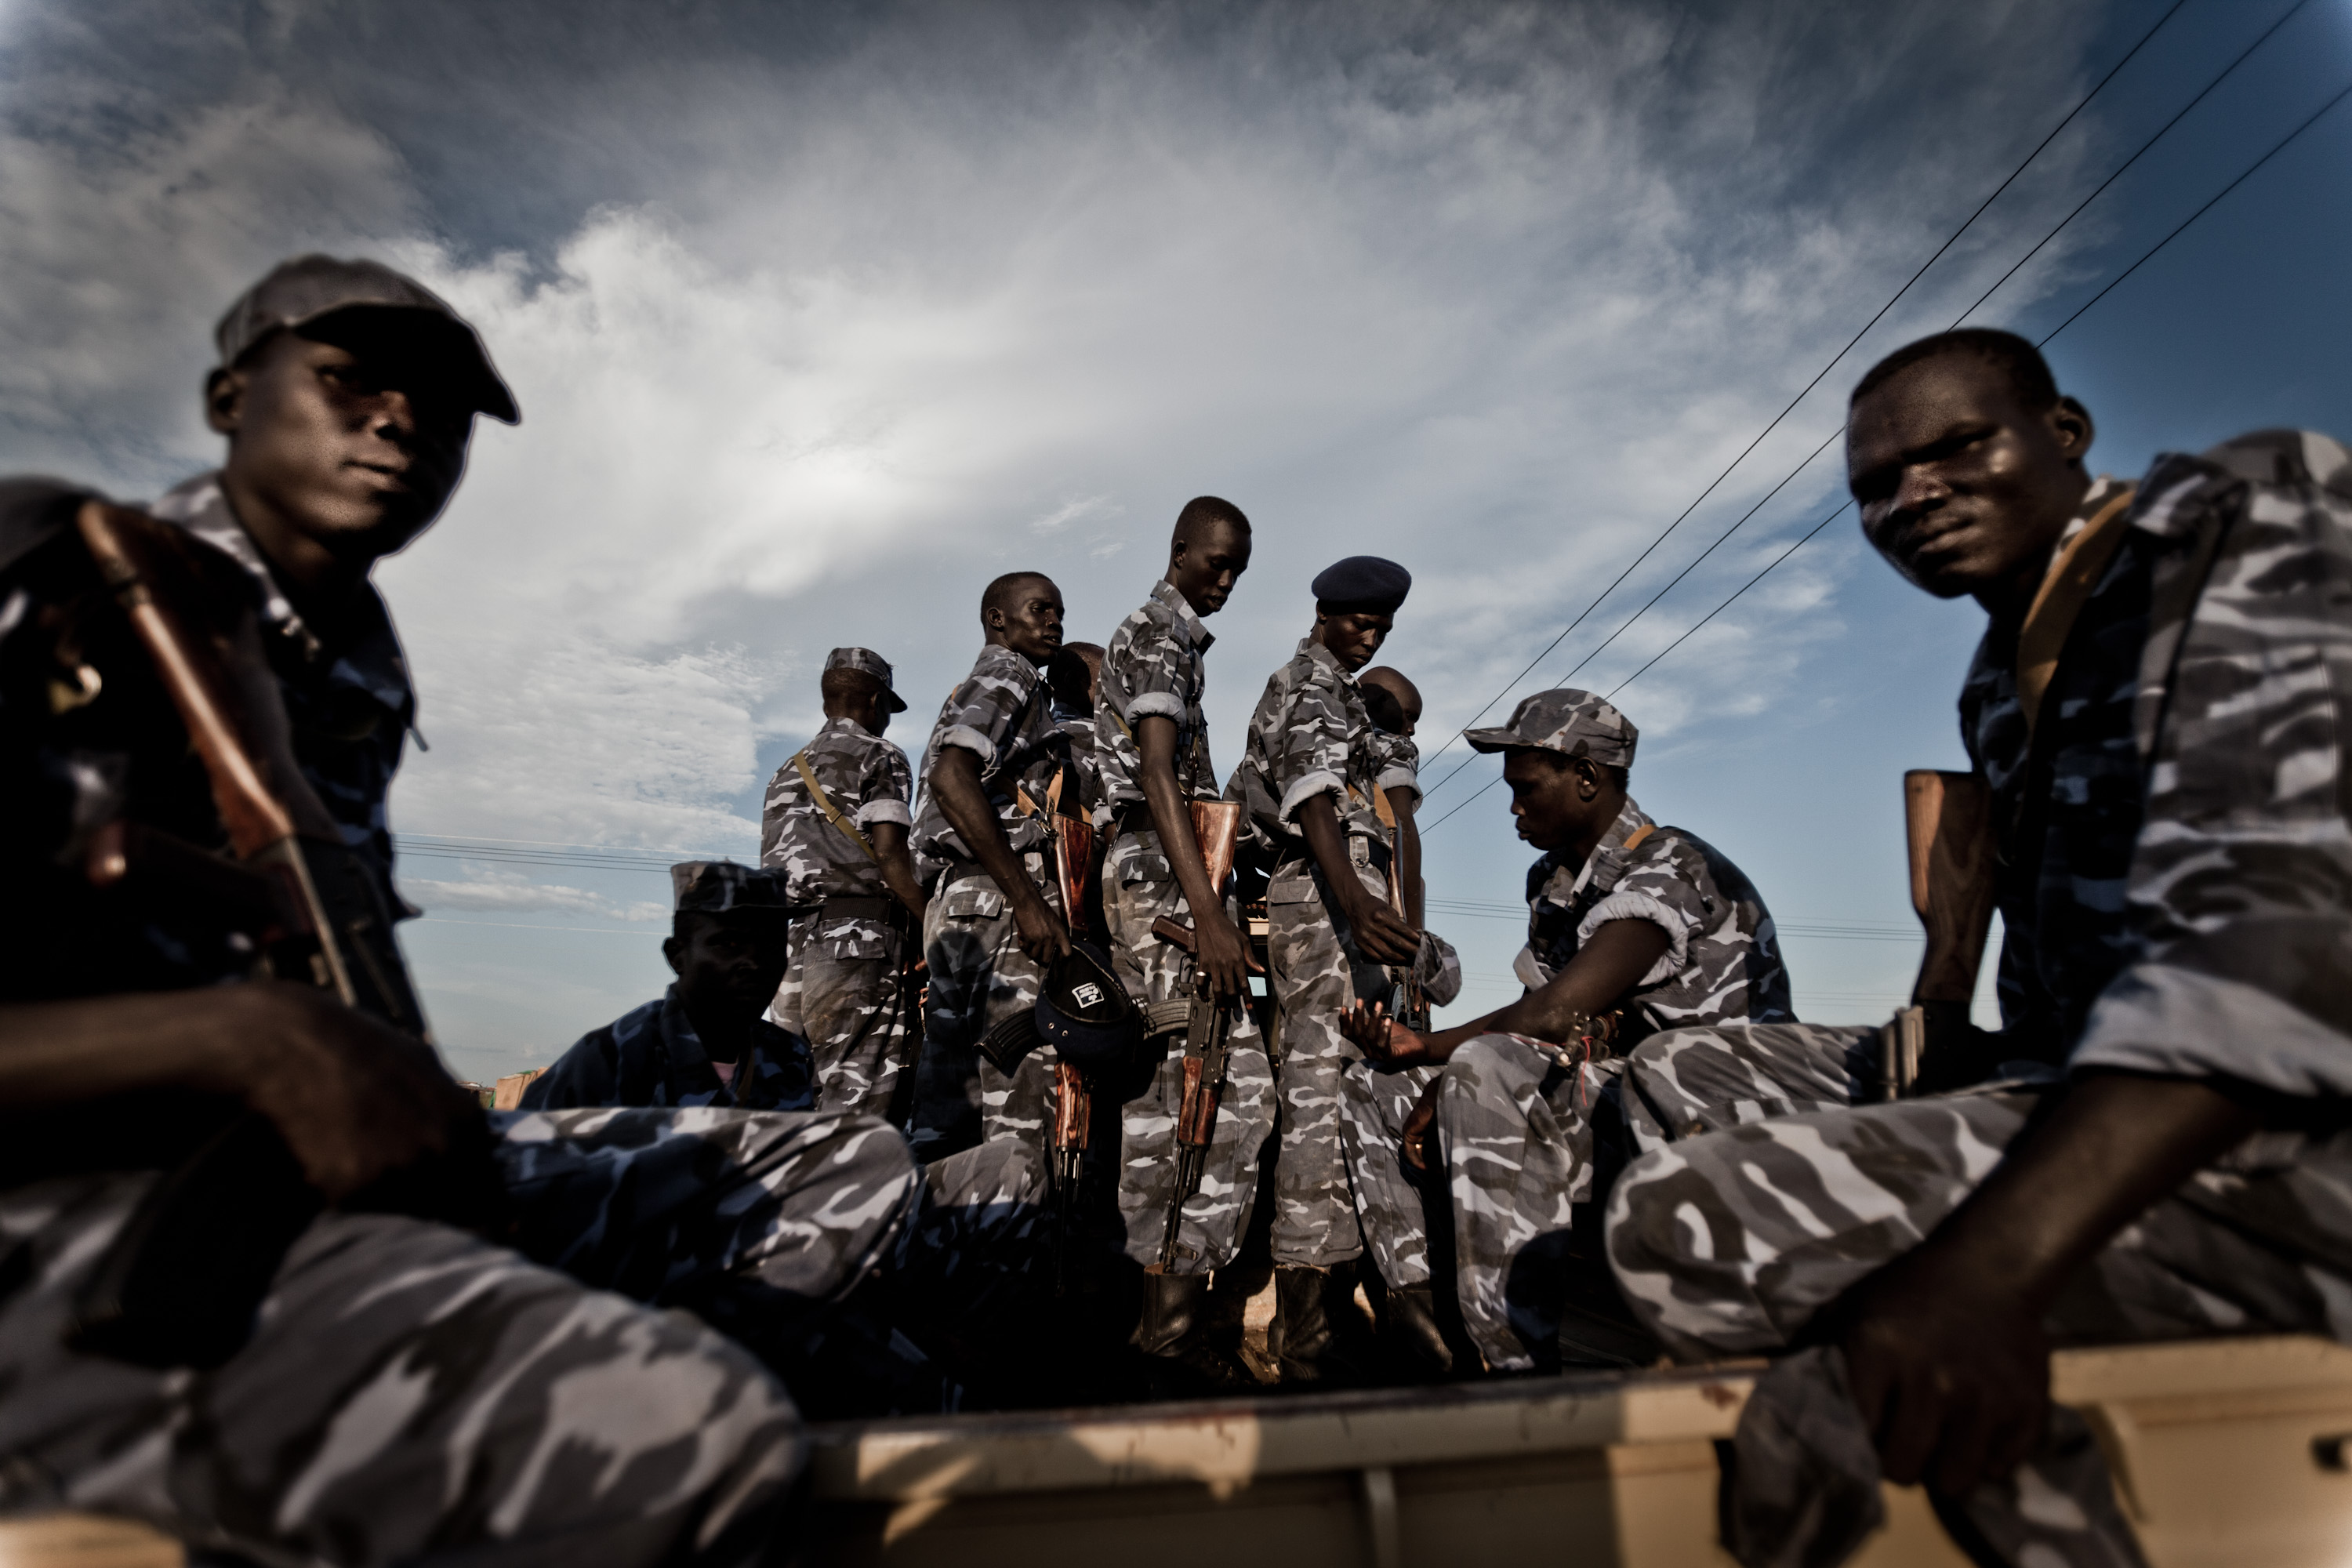 Field Dispatch: The Challenge of Tackling Terrorism in South Sudan